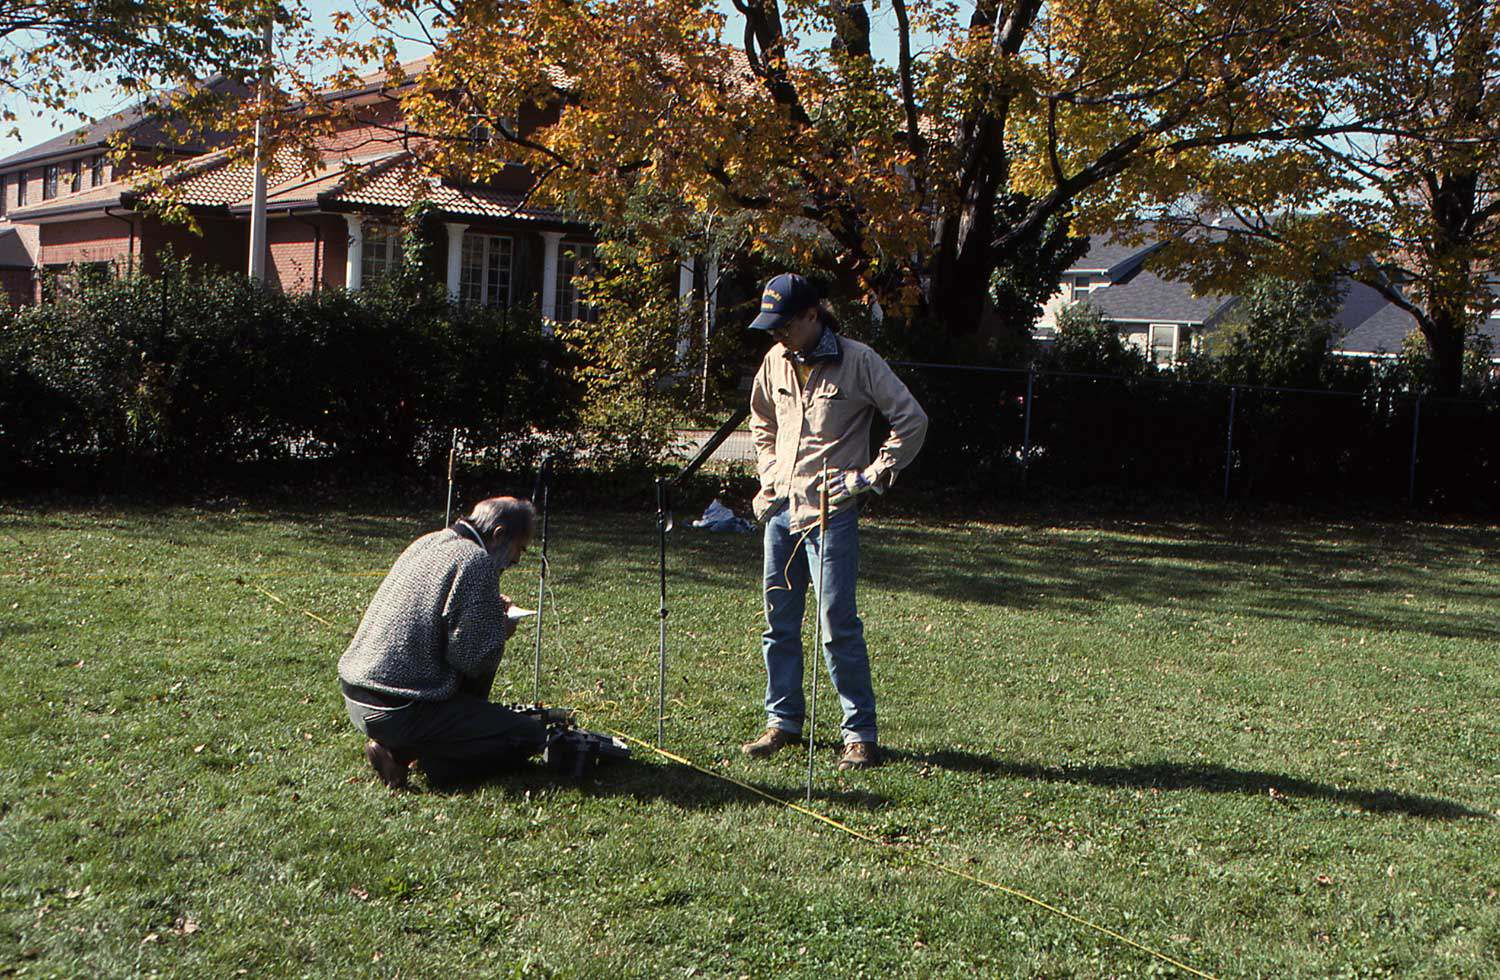 Several geophysical methods were used at the Trust's Chedoke Estate in Hamilton, including resistivity (shown in photo), magnetometer and electromagnetic survey.